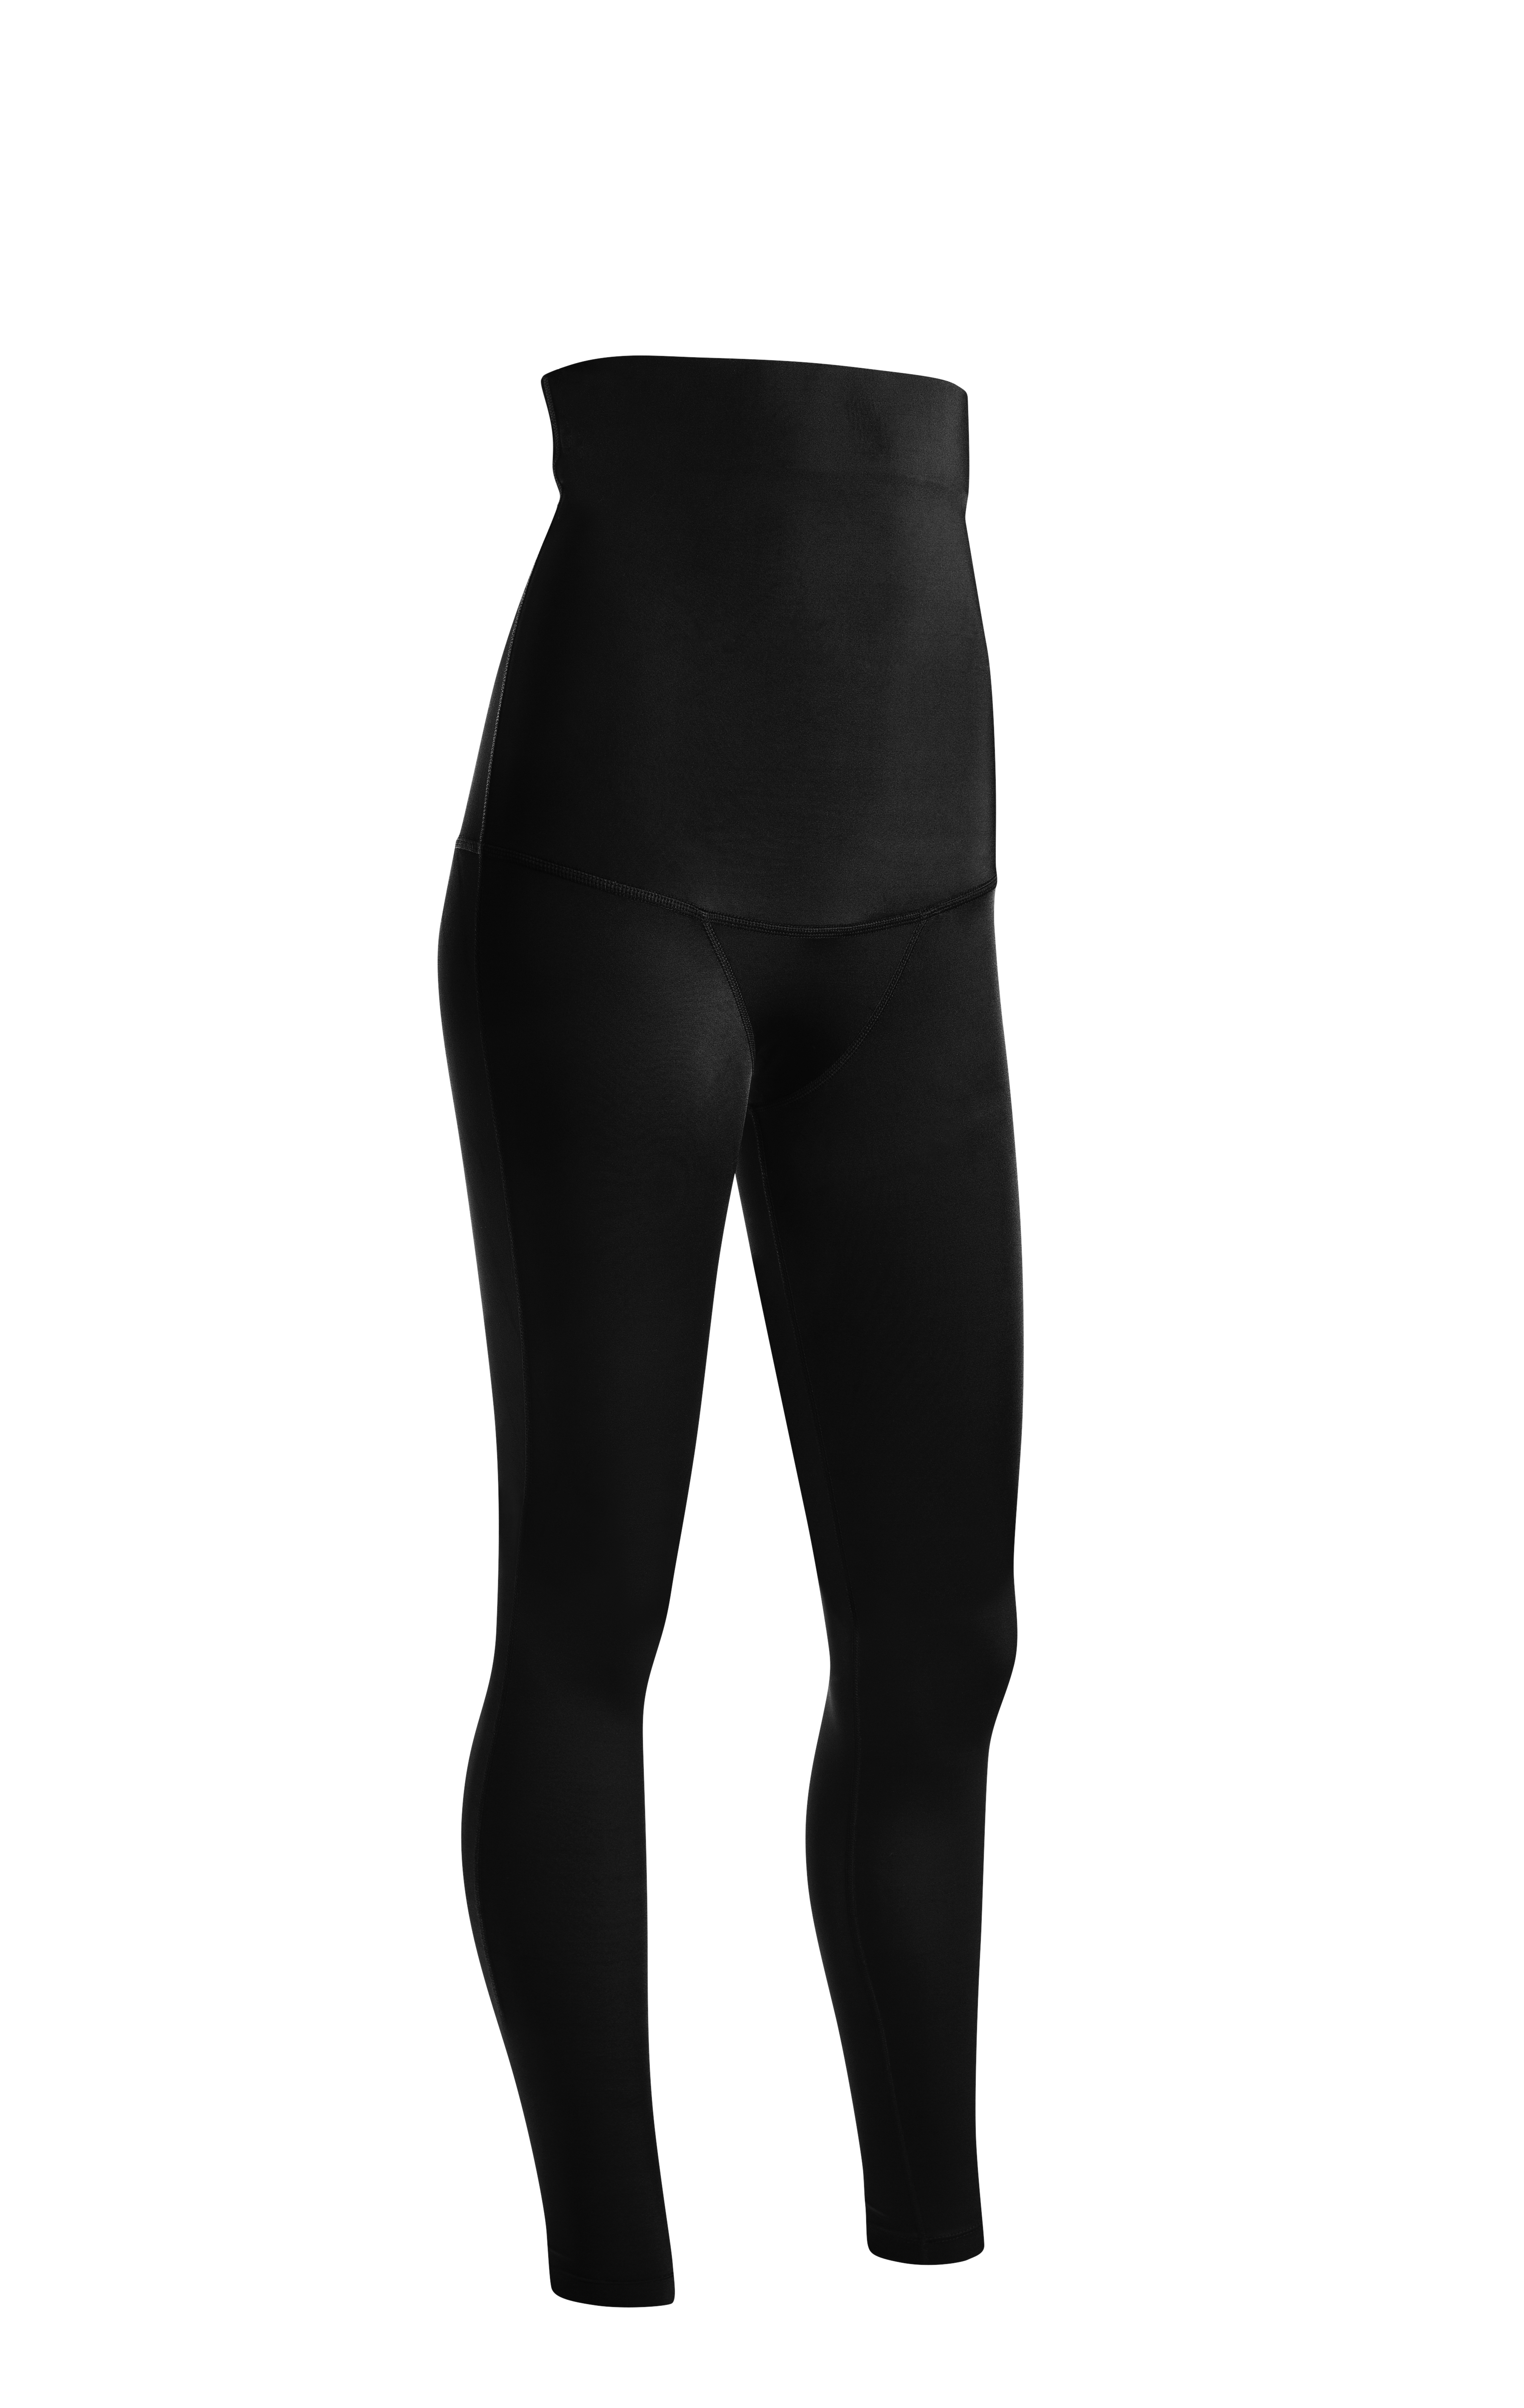 328f386b924c7 SRC Recovery Leggings | Maternity & Recovery Clothes | Babyroad